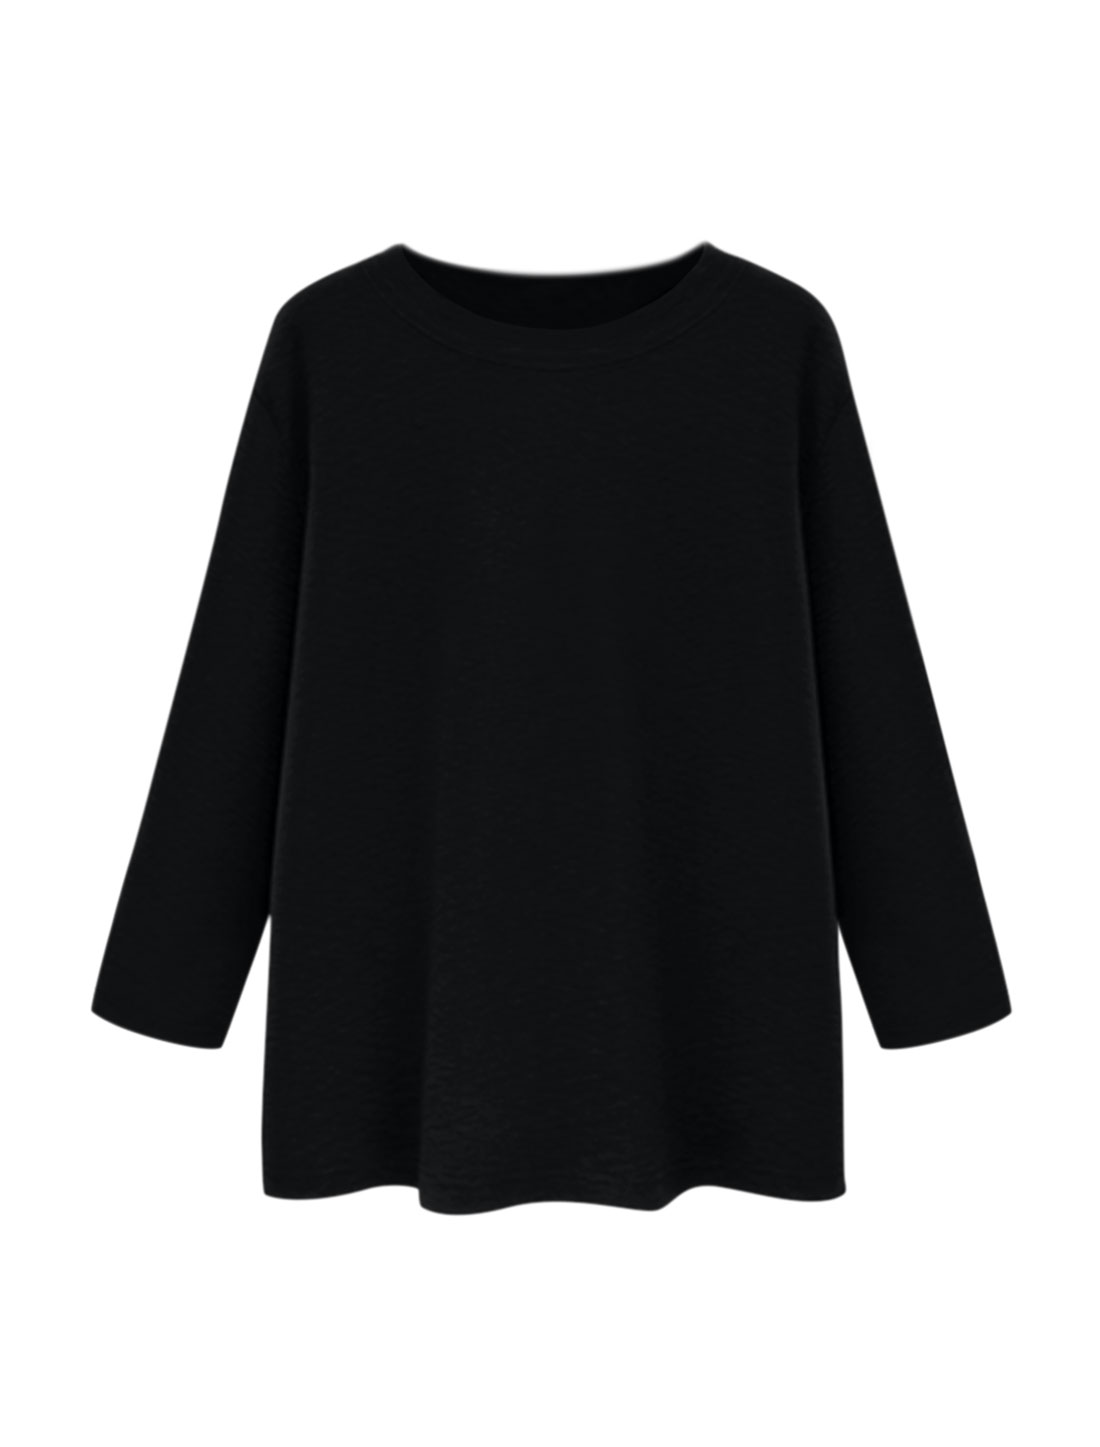 Women Round Neck Long Sleeves Textured Loose Tunic Top Black S